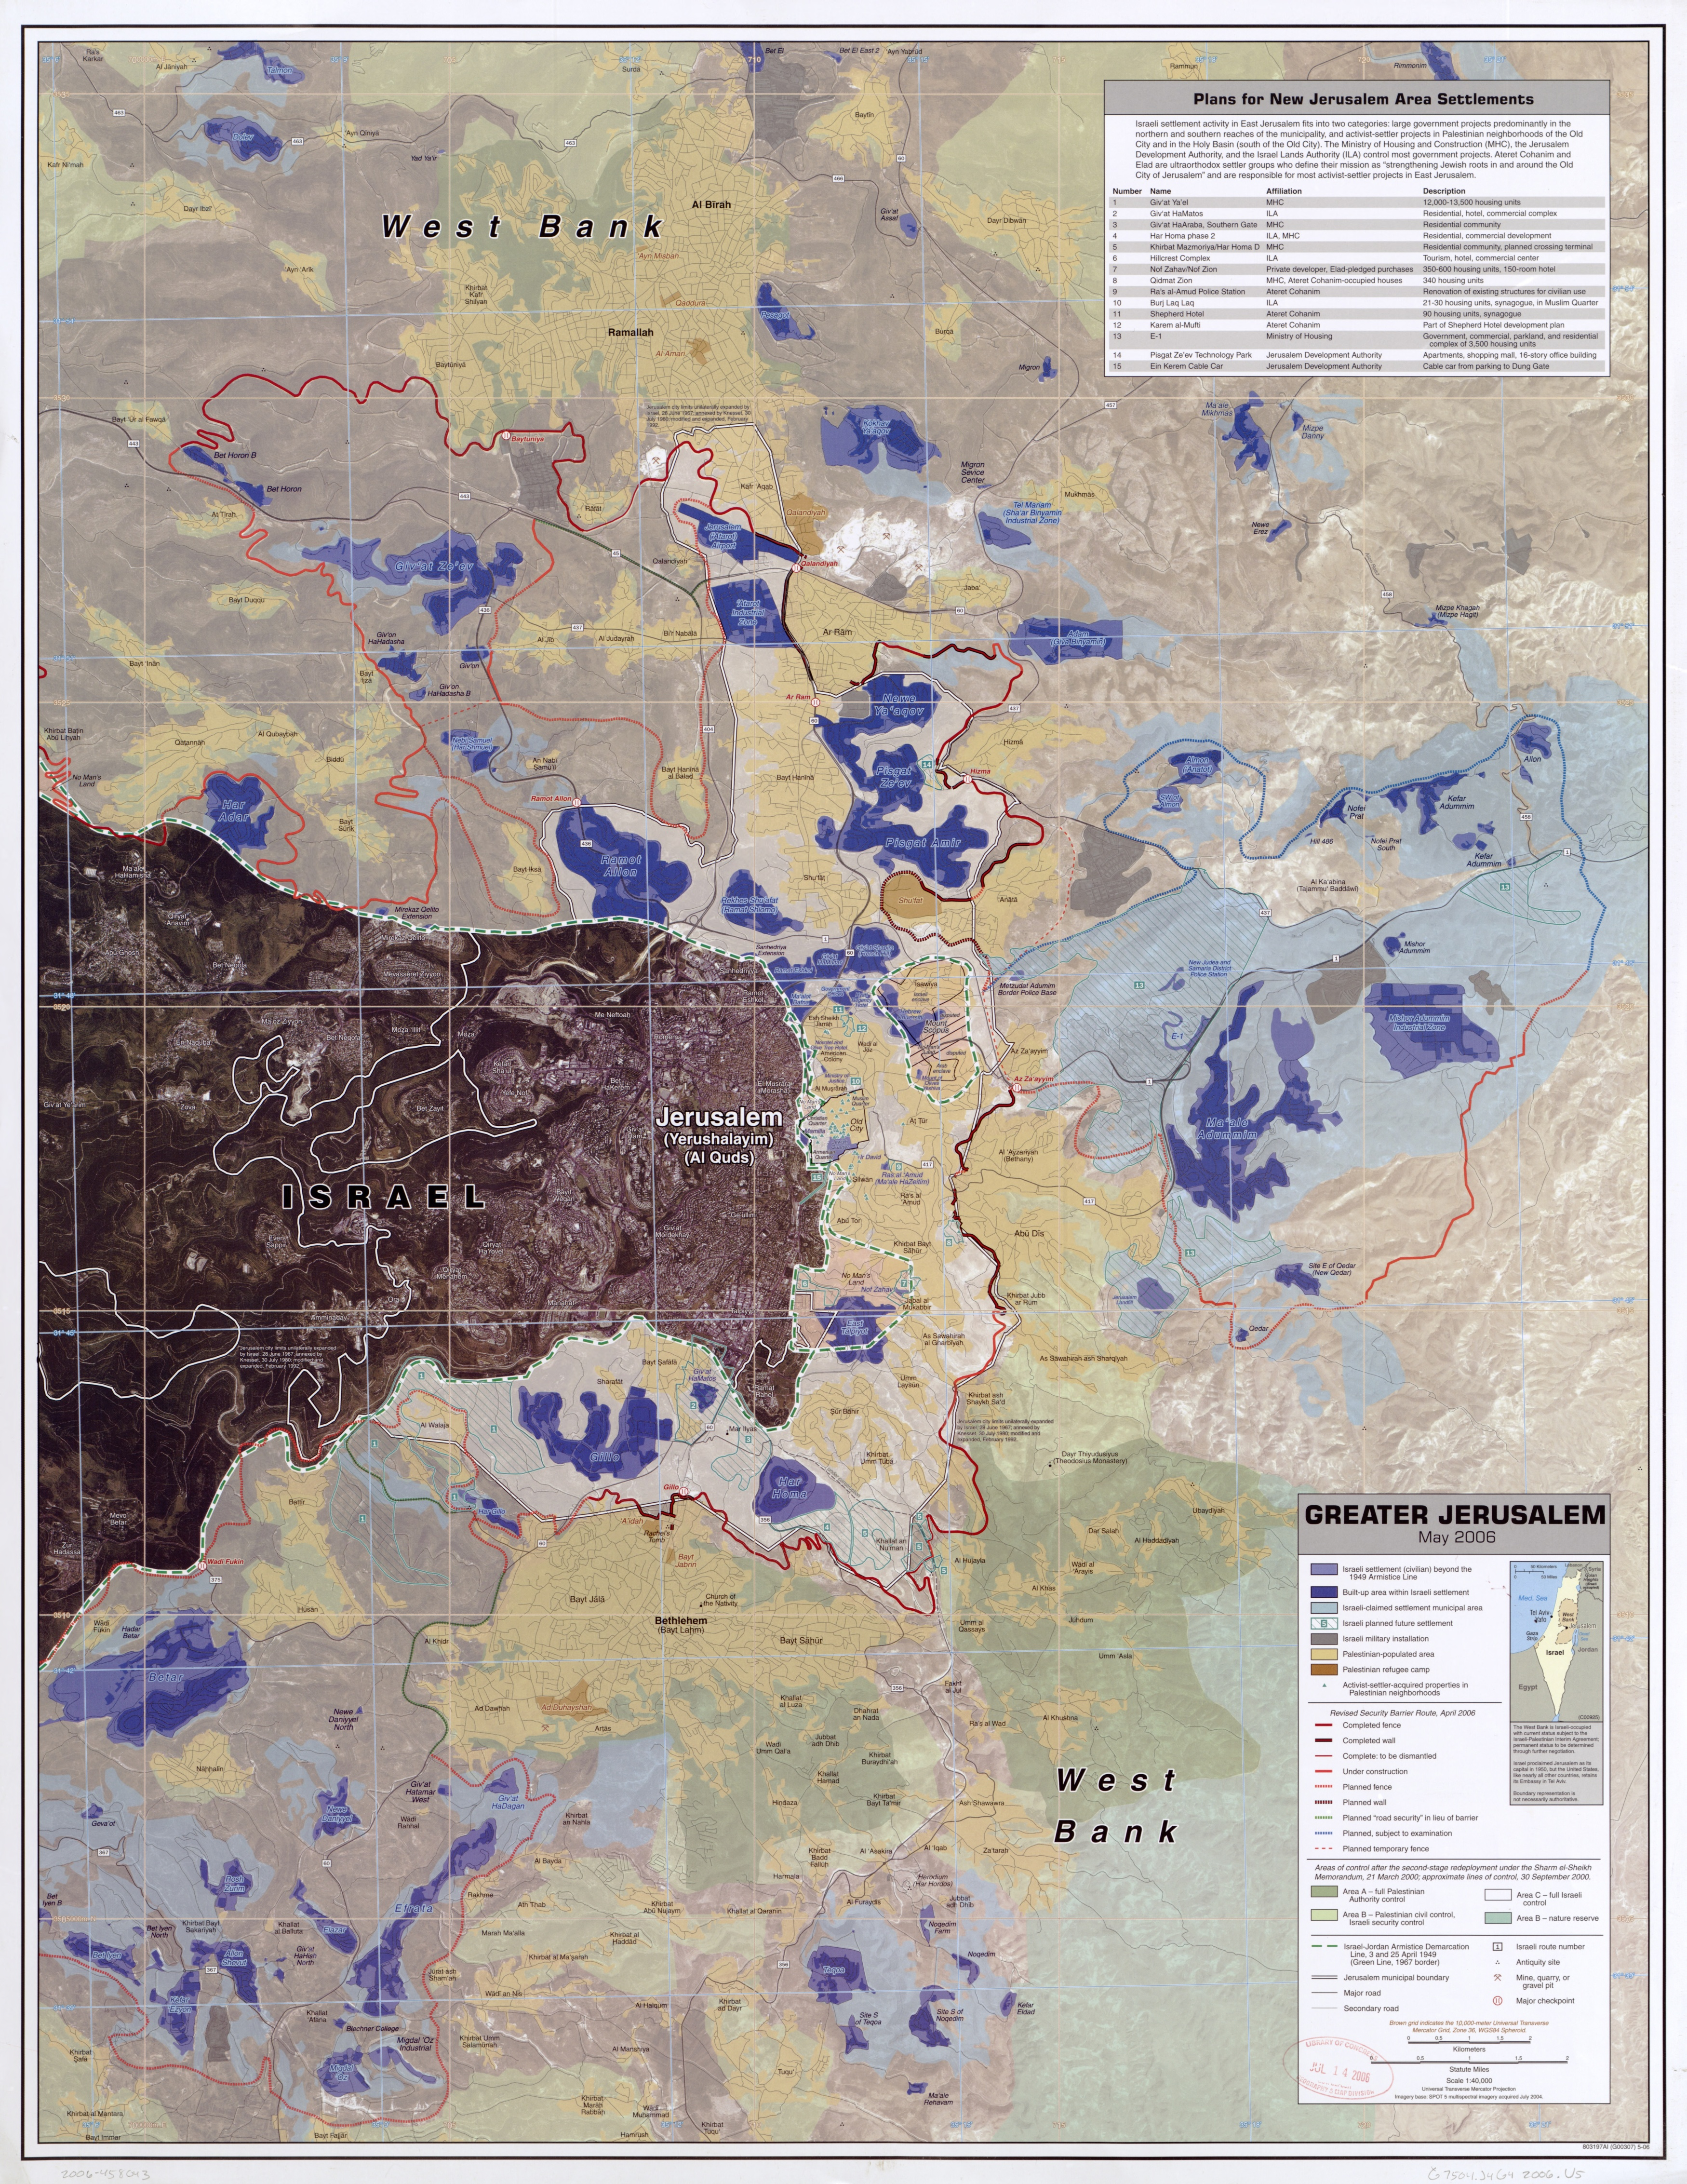 File Greater Jerusalem May 2006 CIA remote sensing map 3500px jpg     File Greater Jerusalem May 2006 CIA remote sensing map 3500px jpg